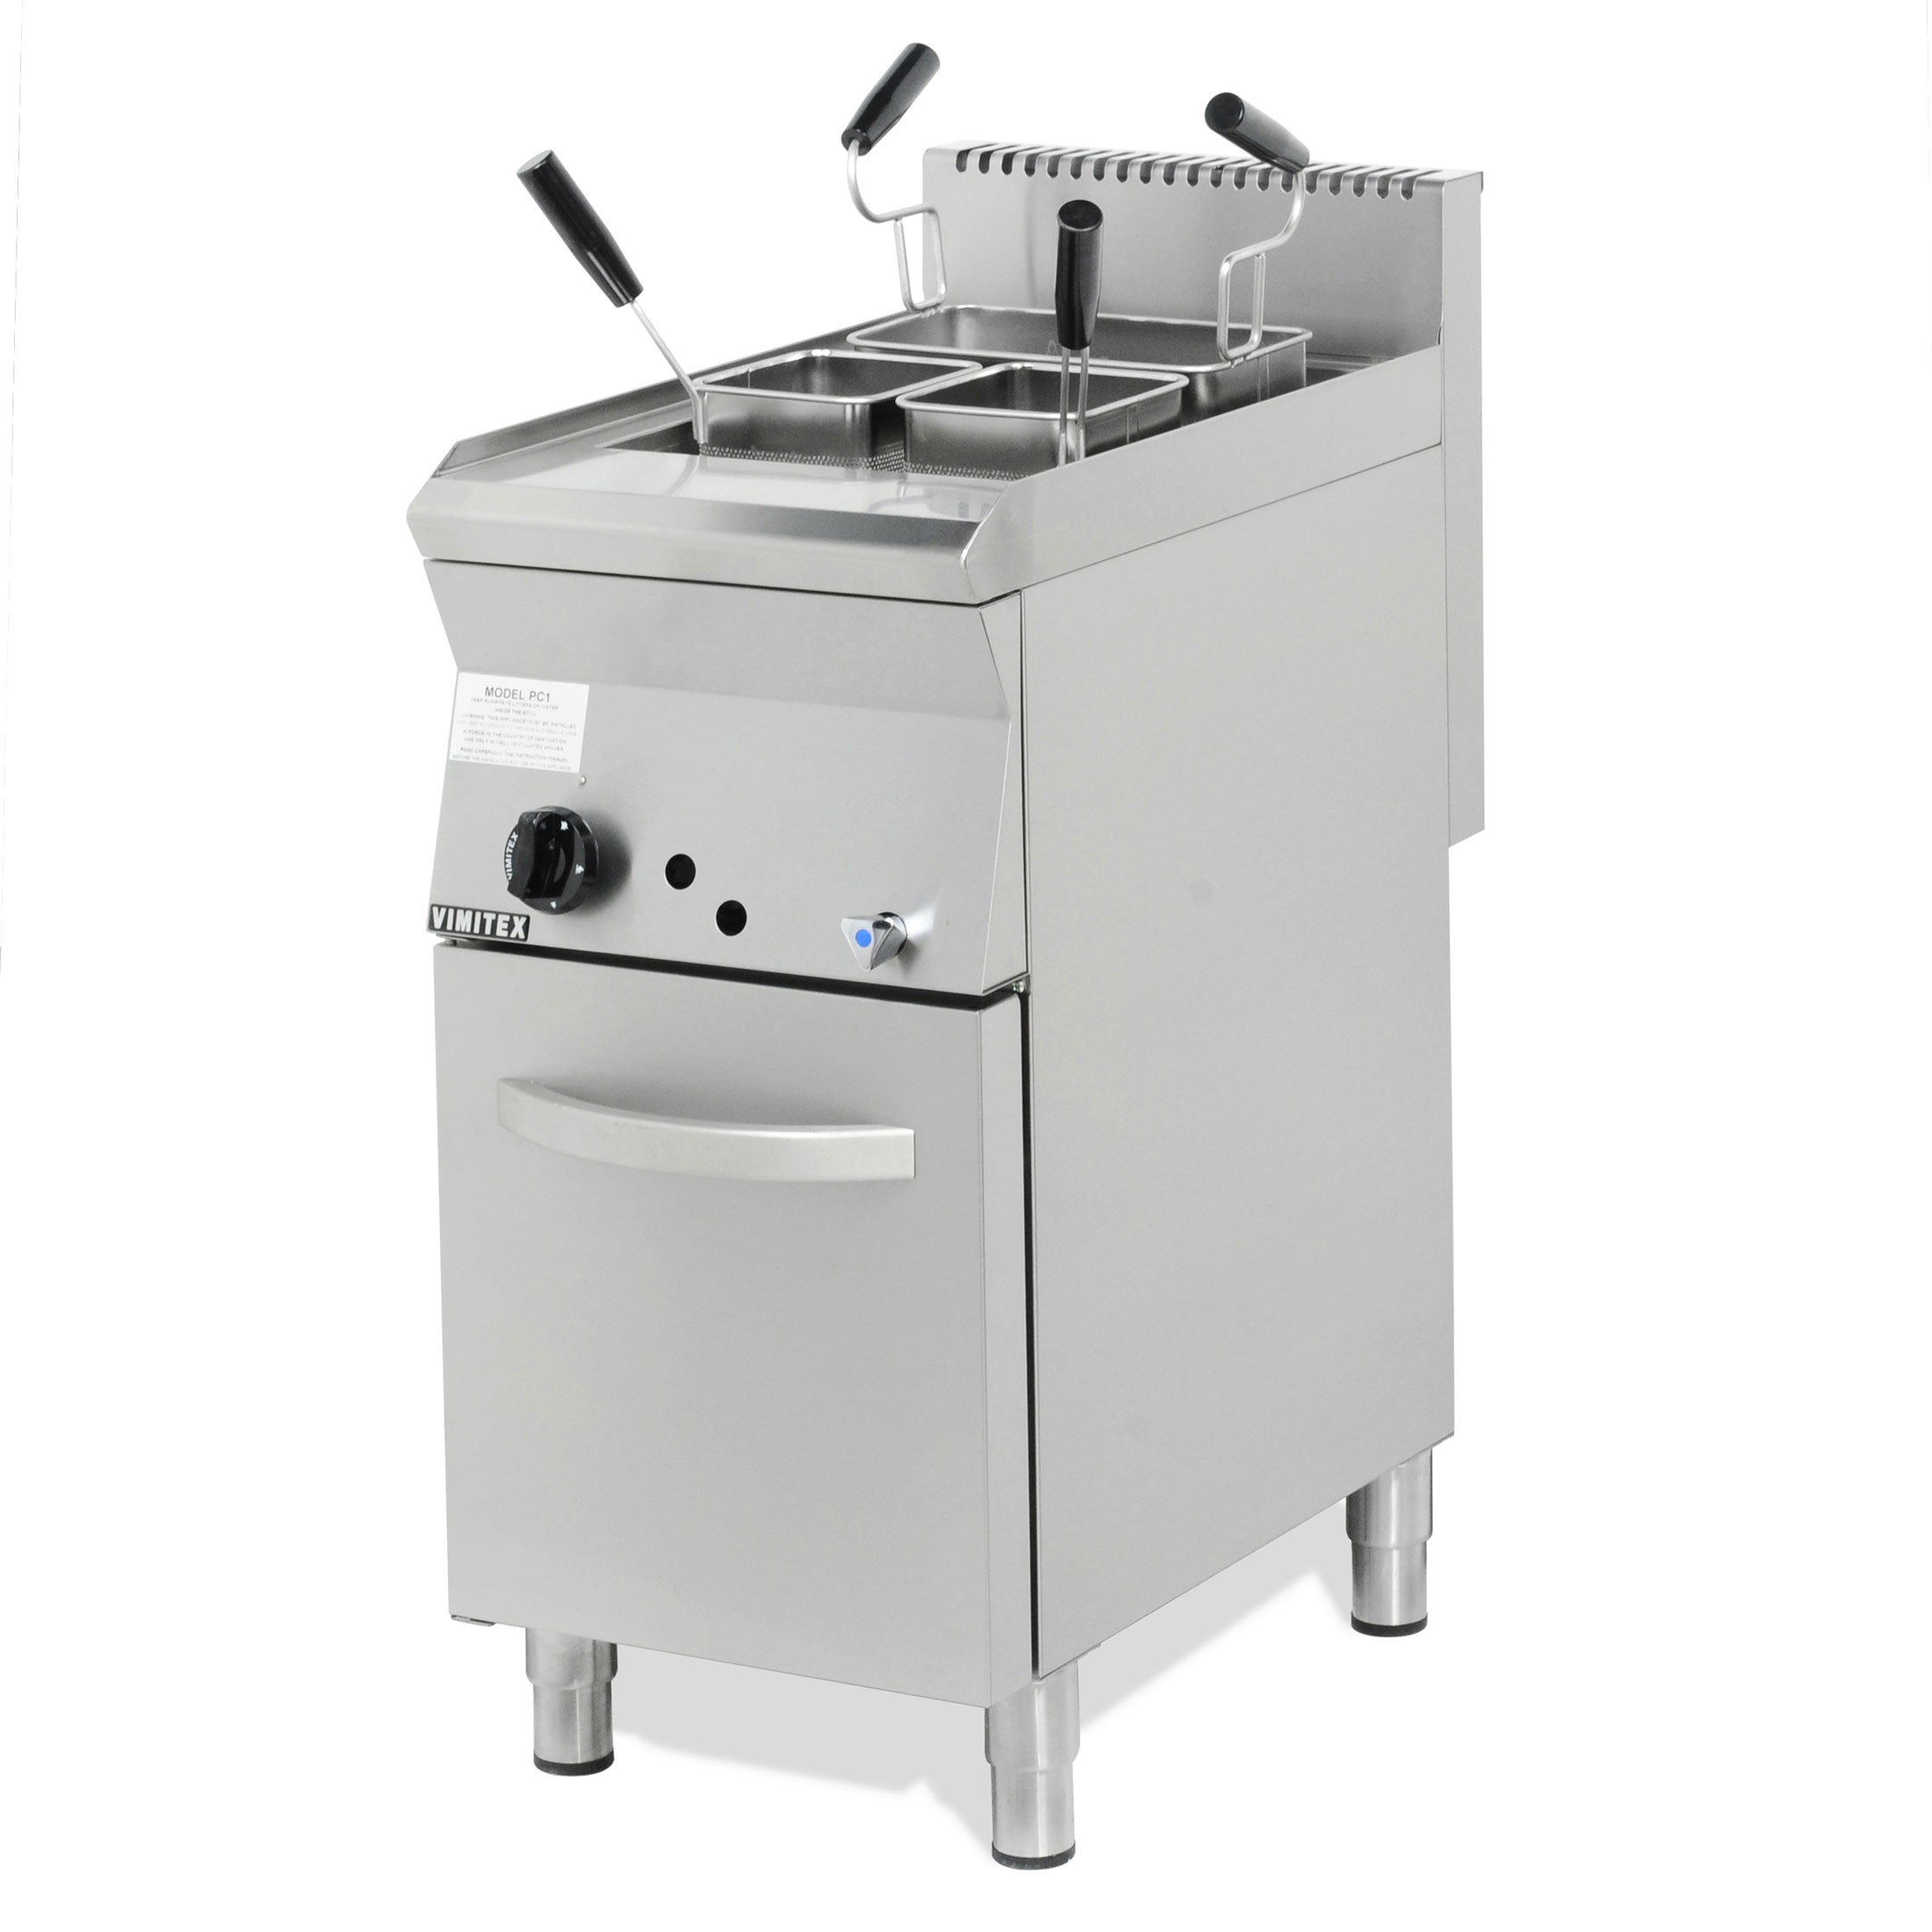 FRYERS<br /><a href='https://www.vimitexshop.com/en/product-categories/fryers'>Go to link</a>